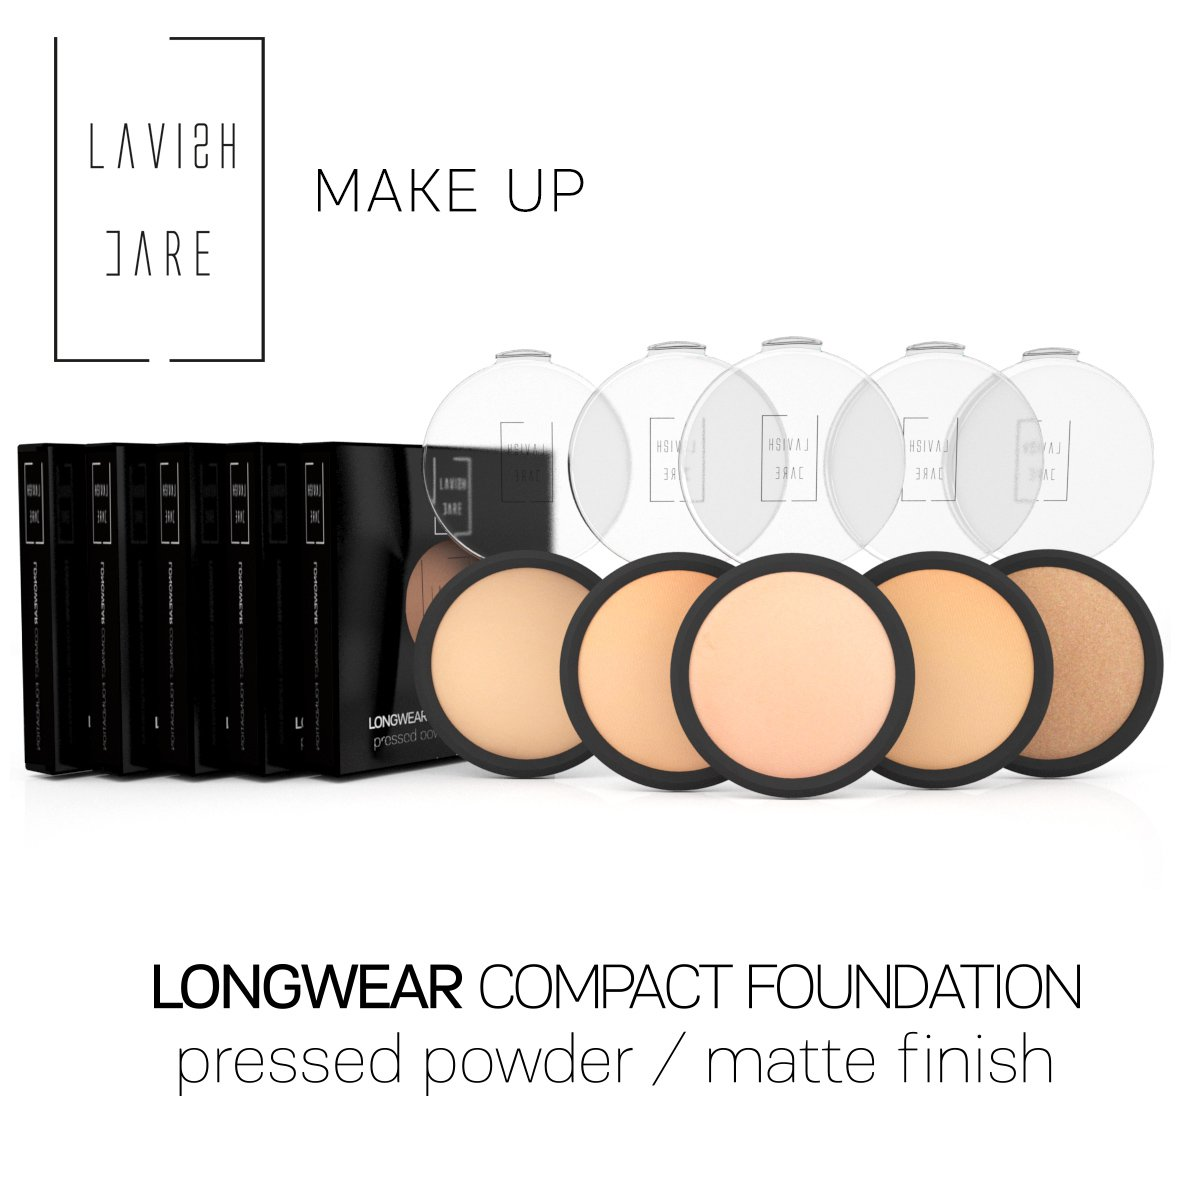 Longwear Compact foundation